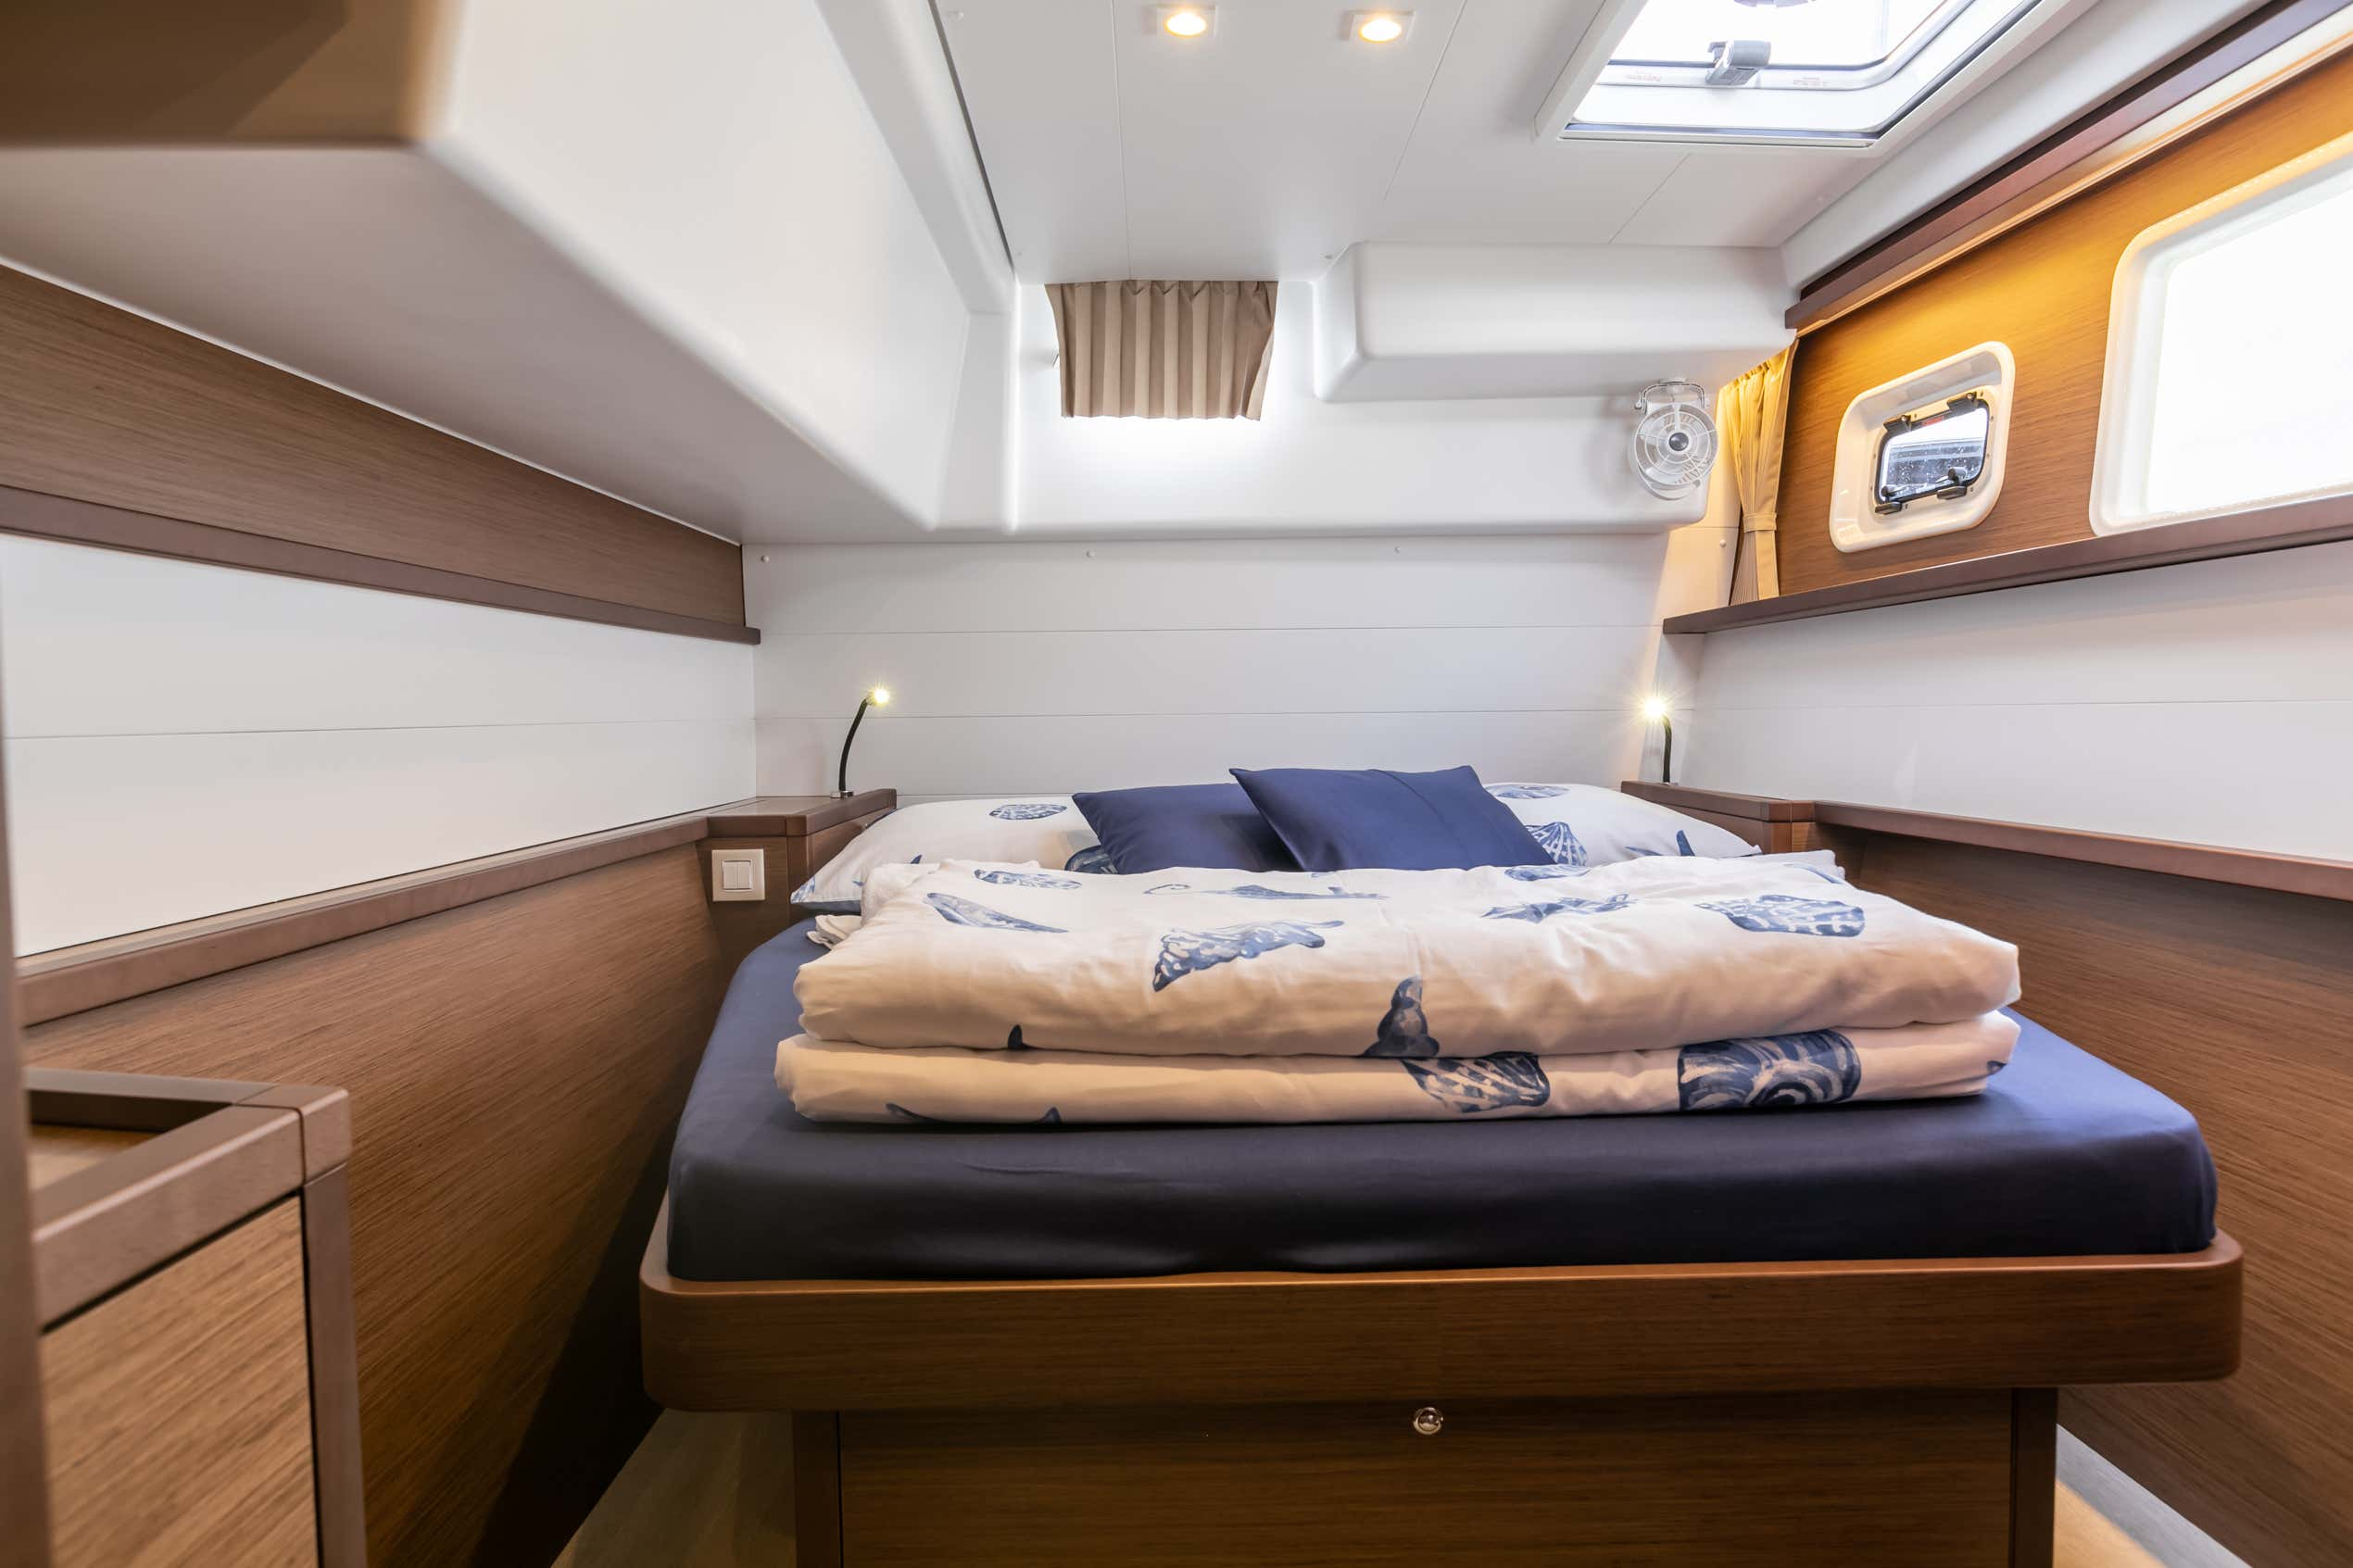 Lagoon 450 F (2019) equipped with generator, A/C ( (WIDE DREAM)  - 8